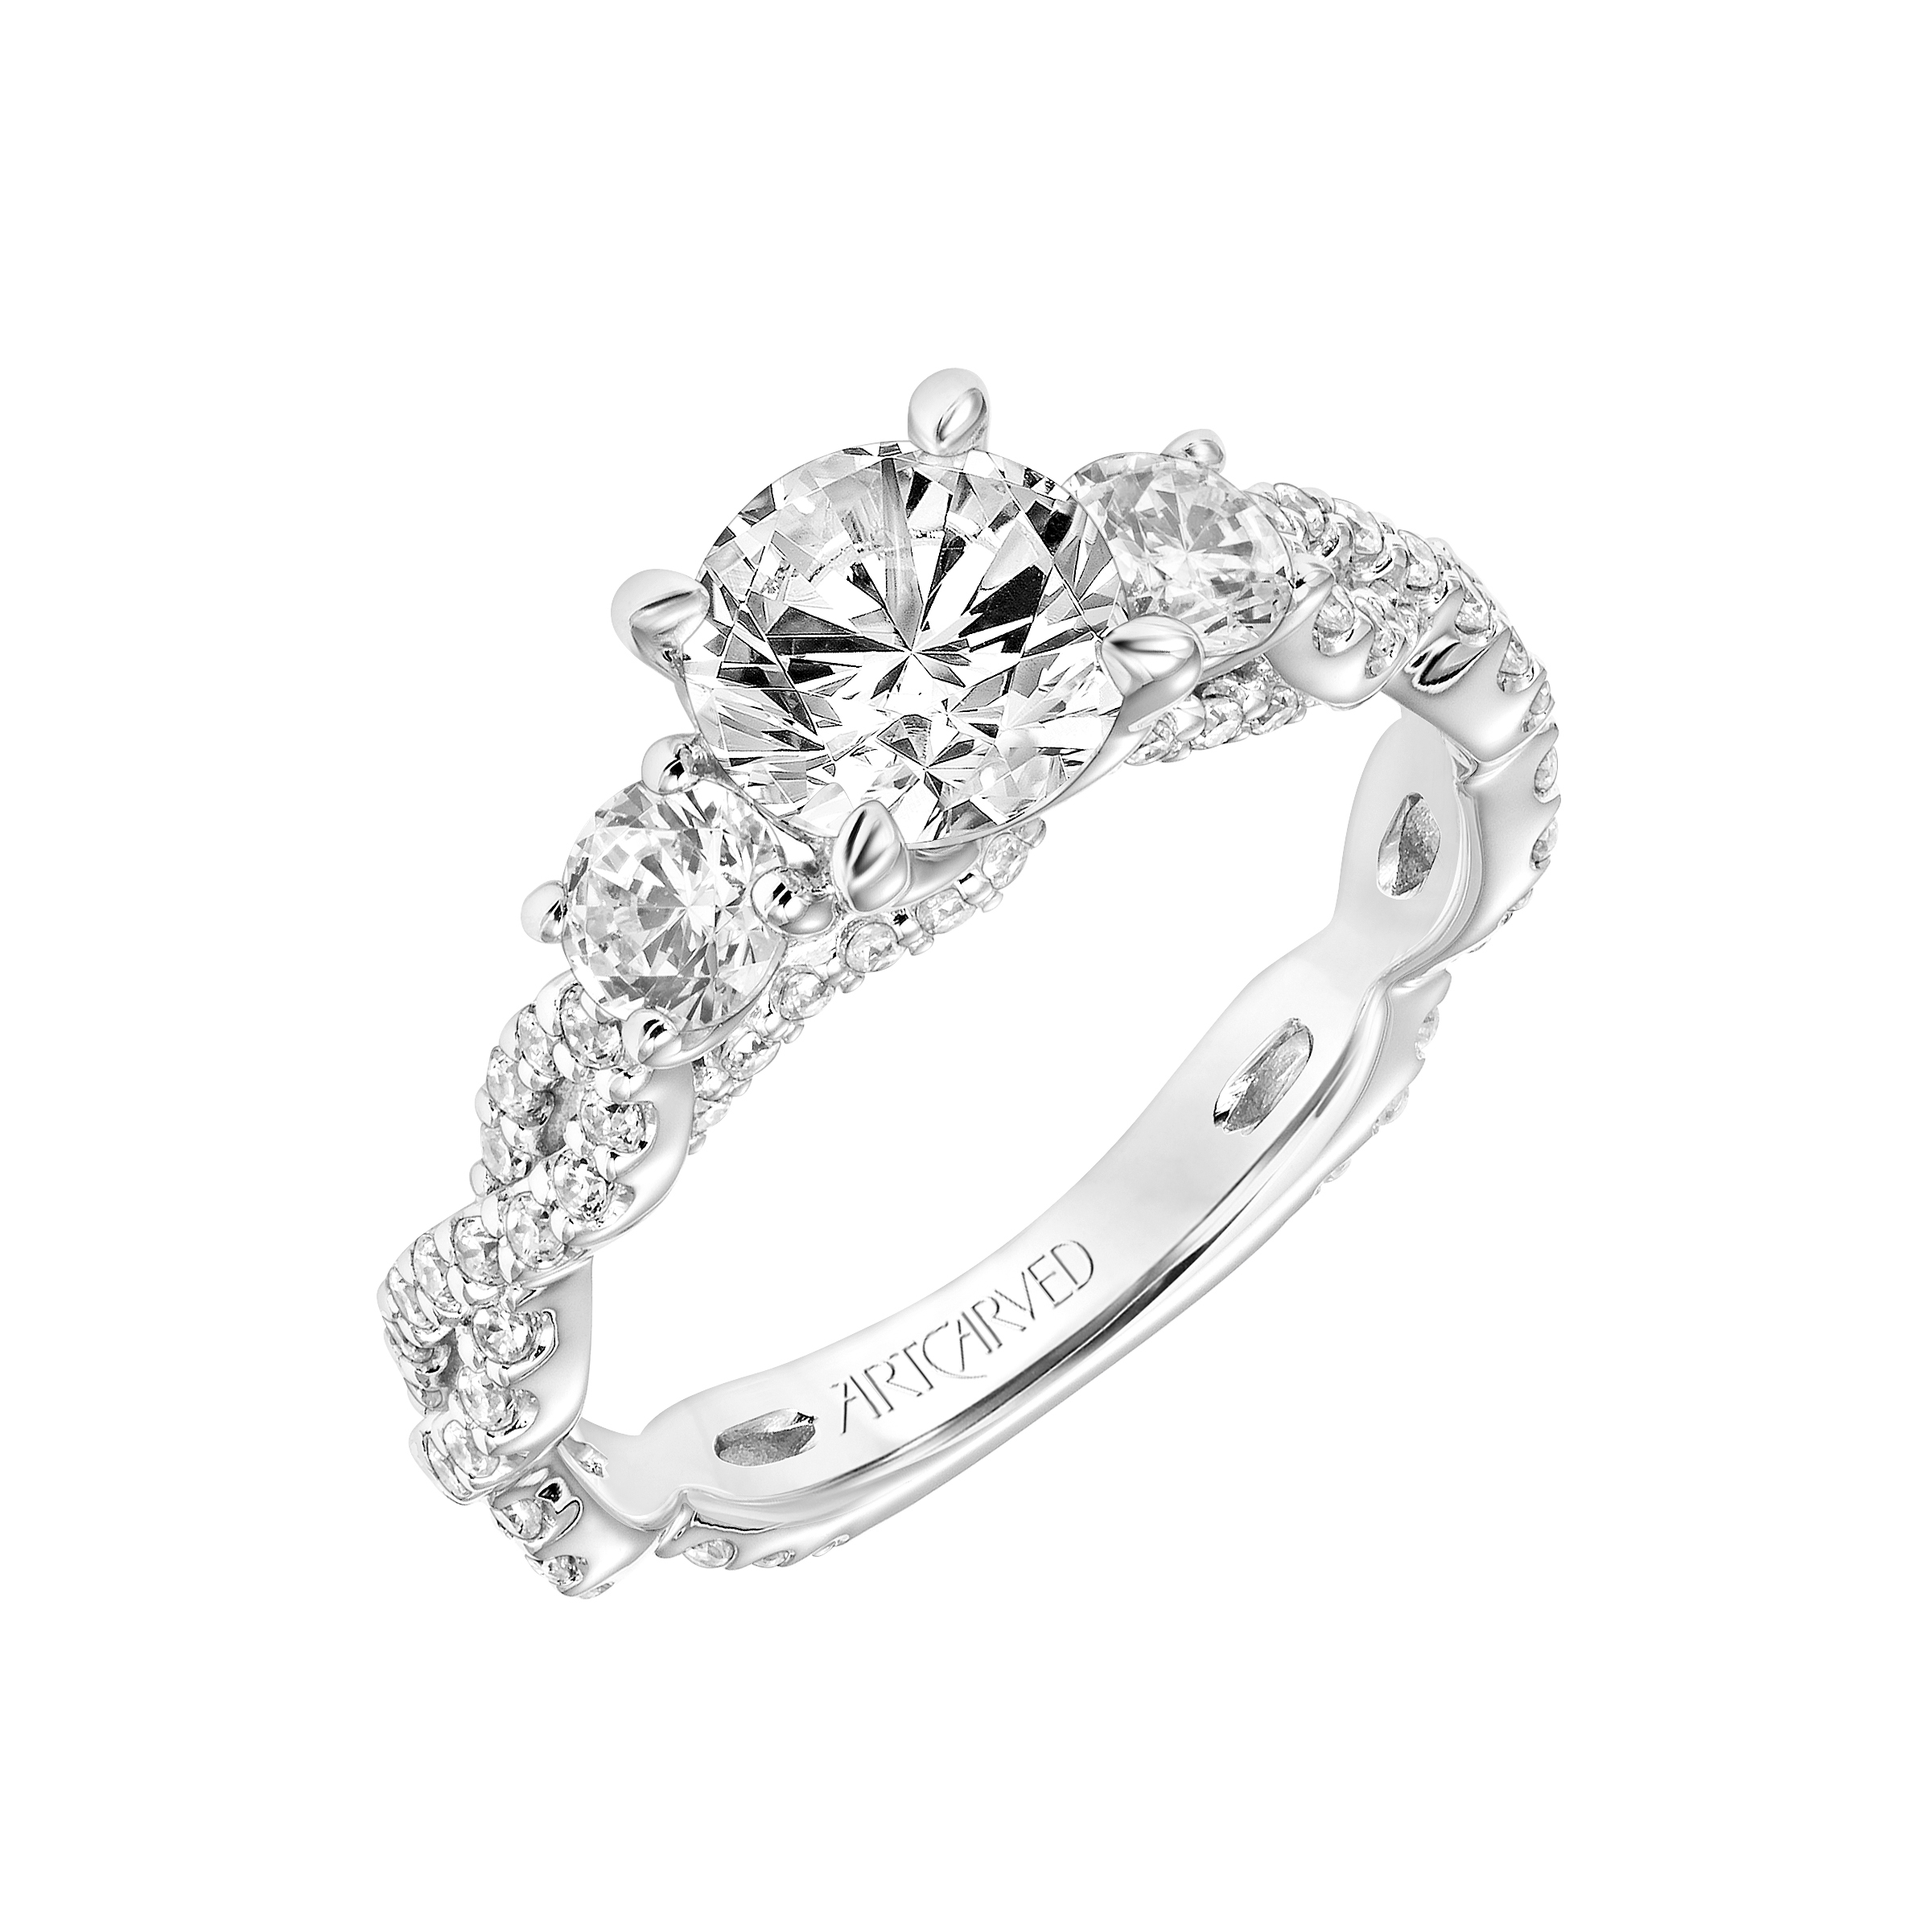 wide cathedral her for band solitaire rings diamond cute pave extra with engagement bands wedding